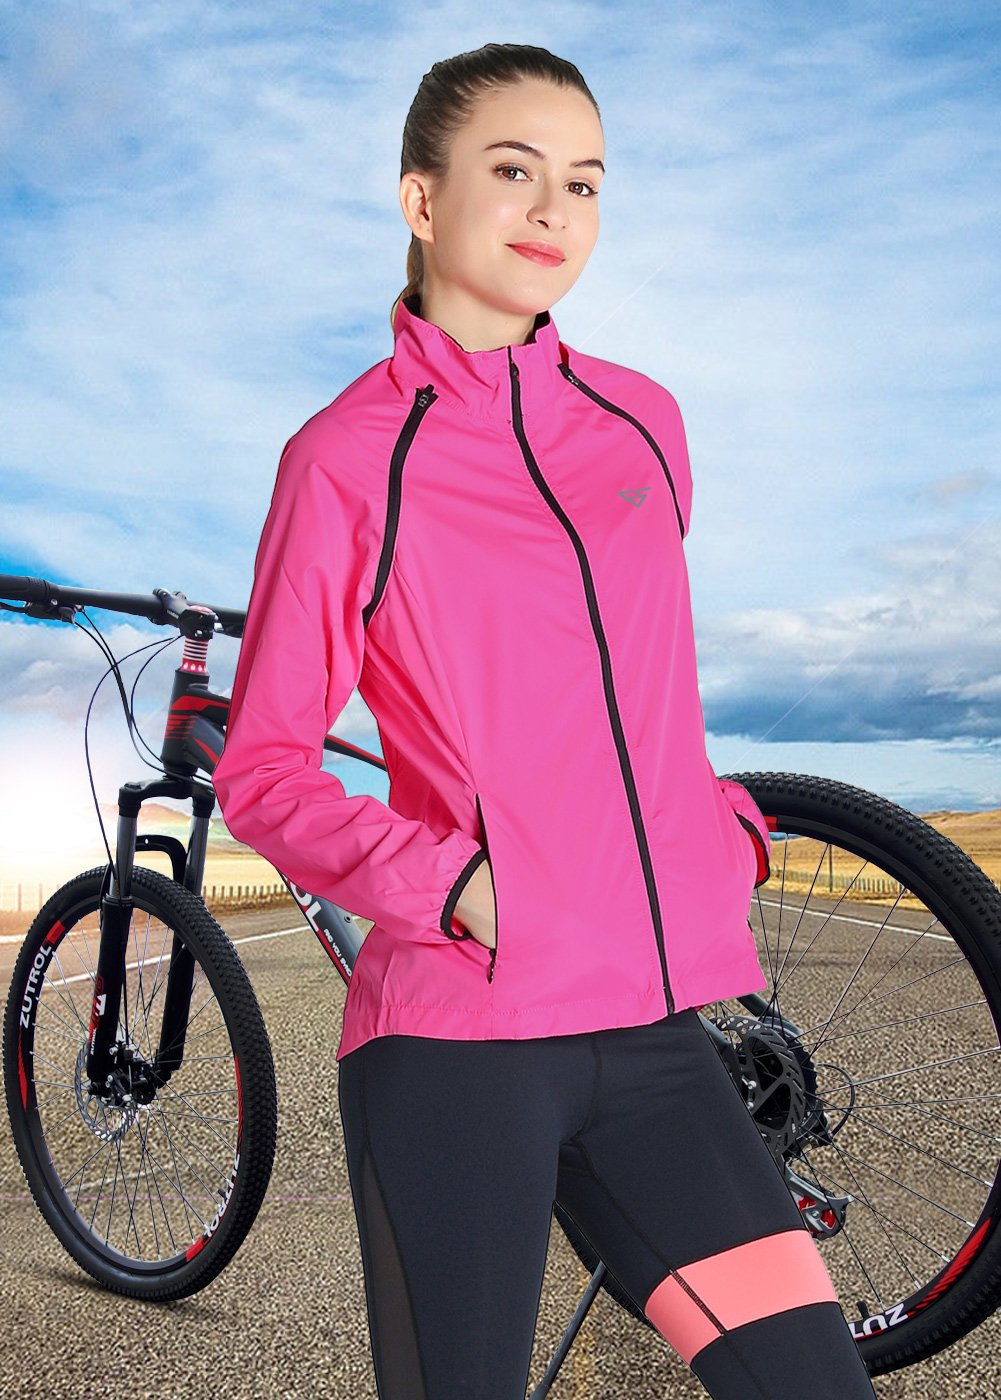 Fastorm Convertible Cycling Jacket Women's Windproof Lightweight Running Outdoor Sportwear Water Resistant (Rose Red, 2XL)